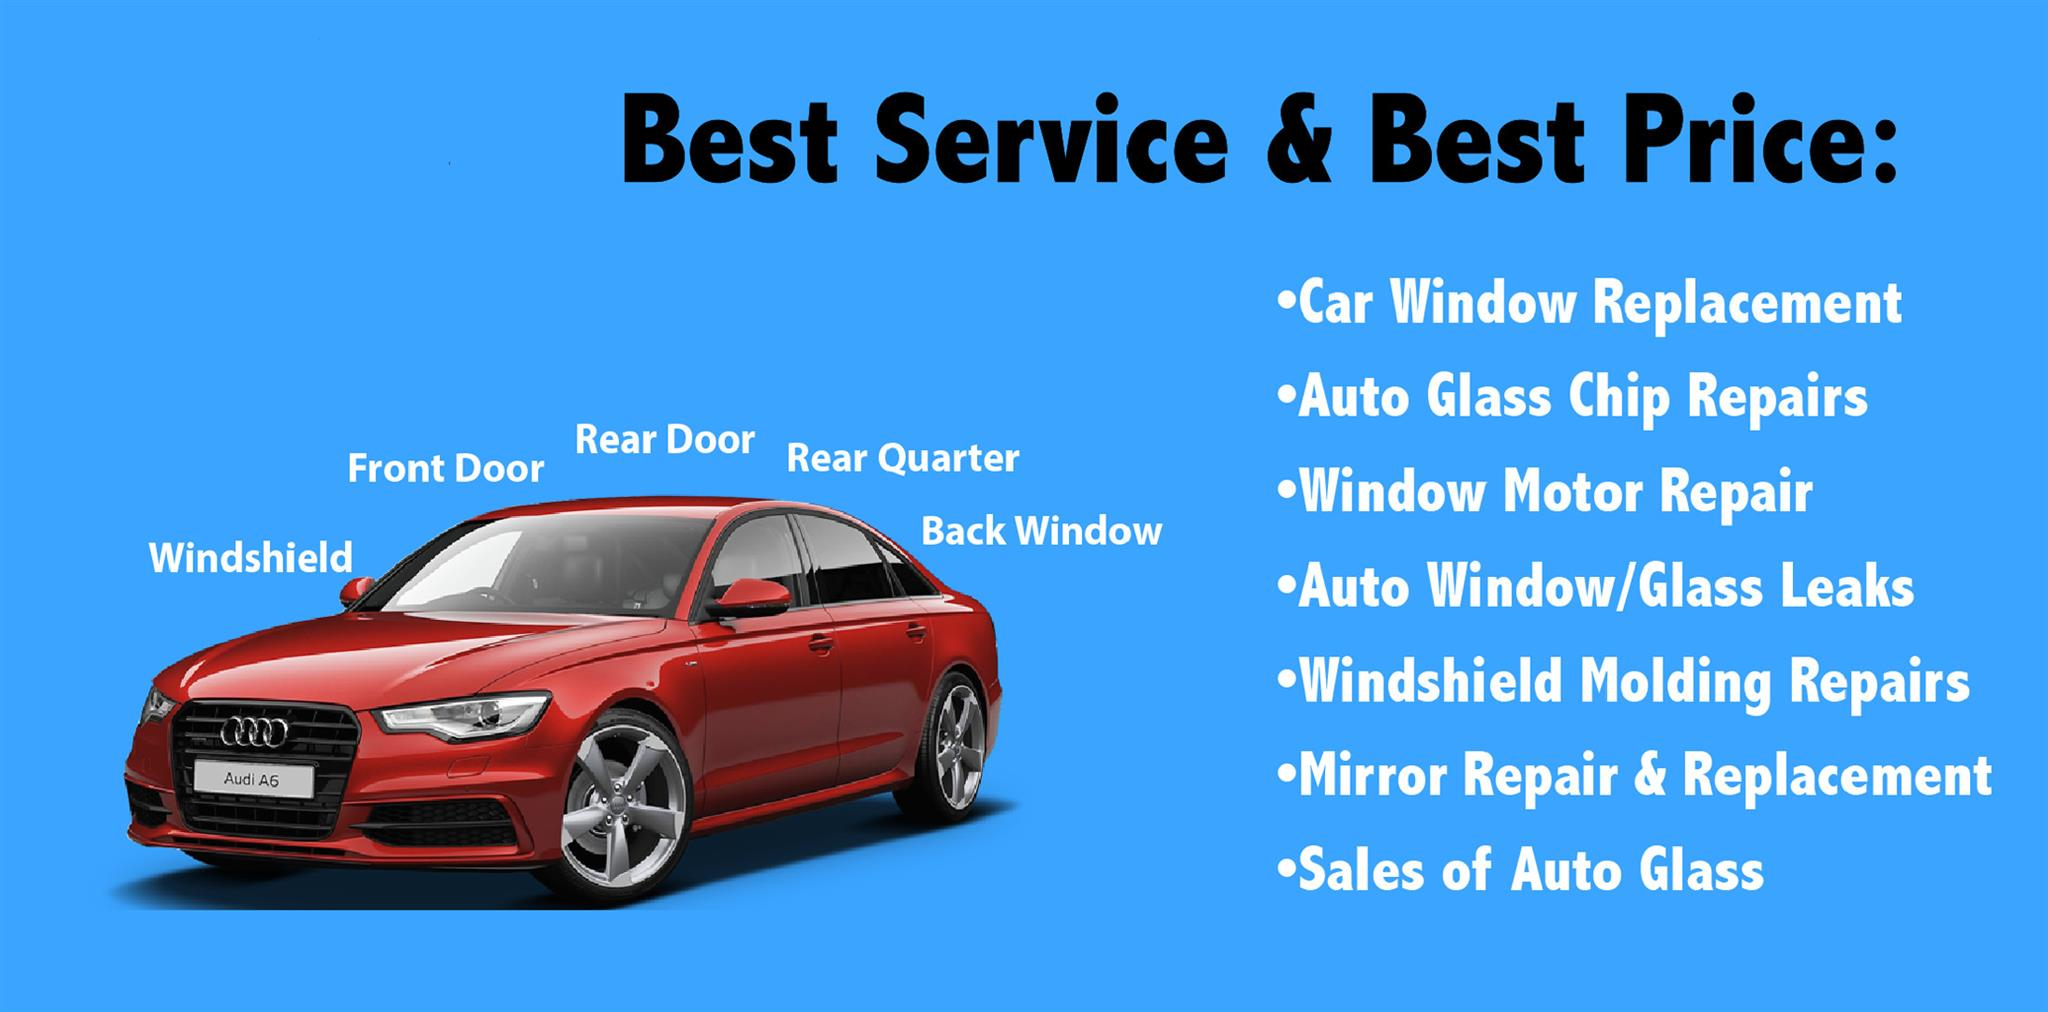 Auto Window Repair Near Me >> Auto Glass Repair Near Me